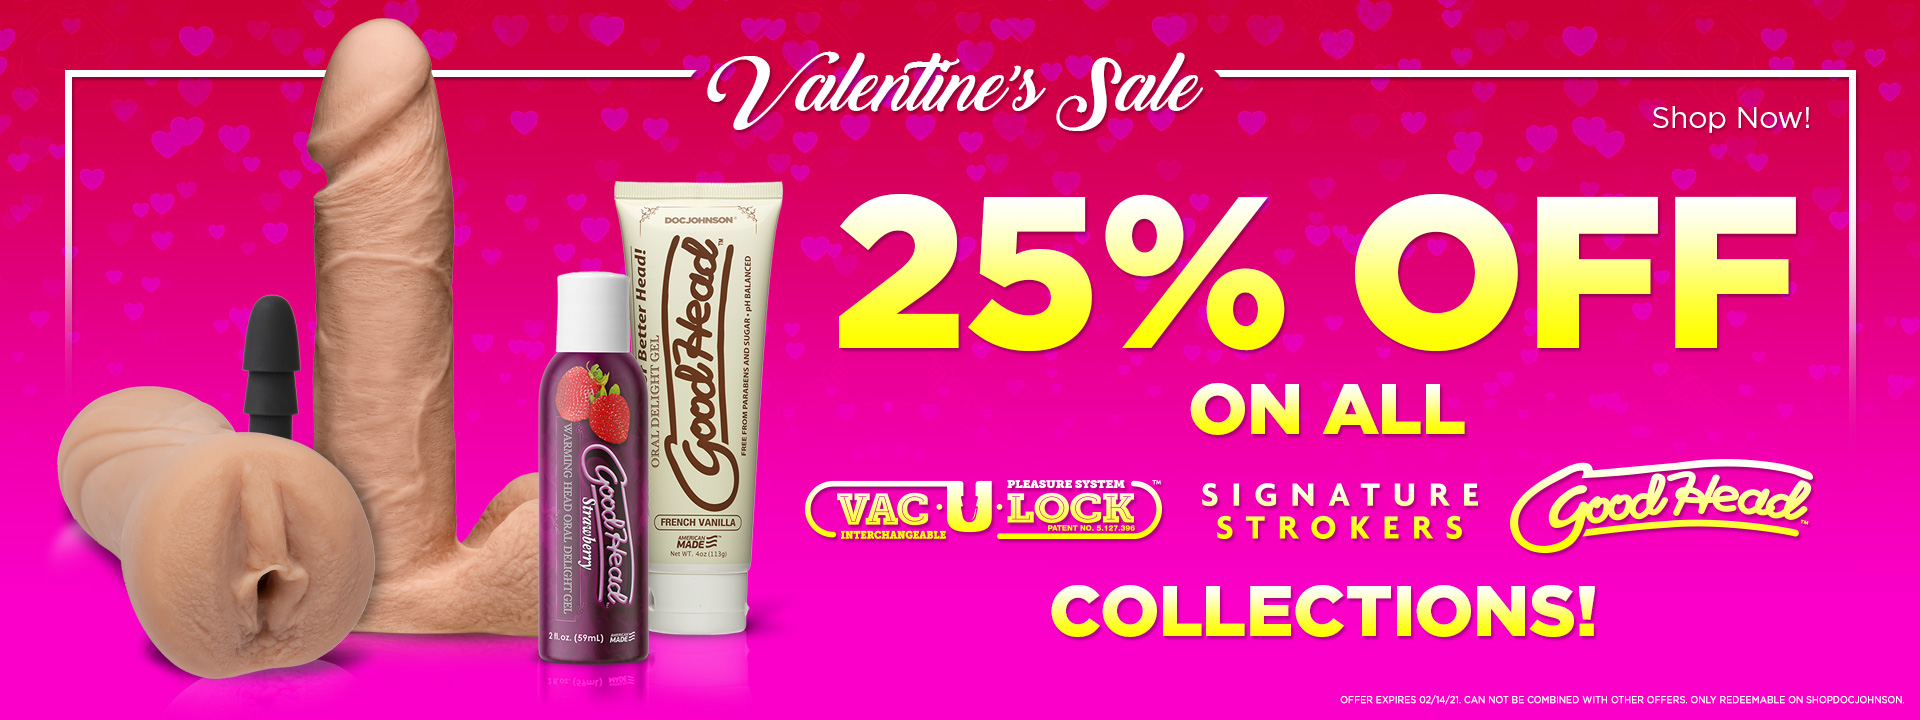 Vaentine's Sales for Him, Her and Couples